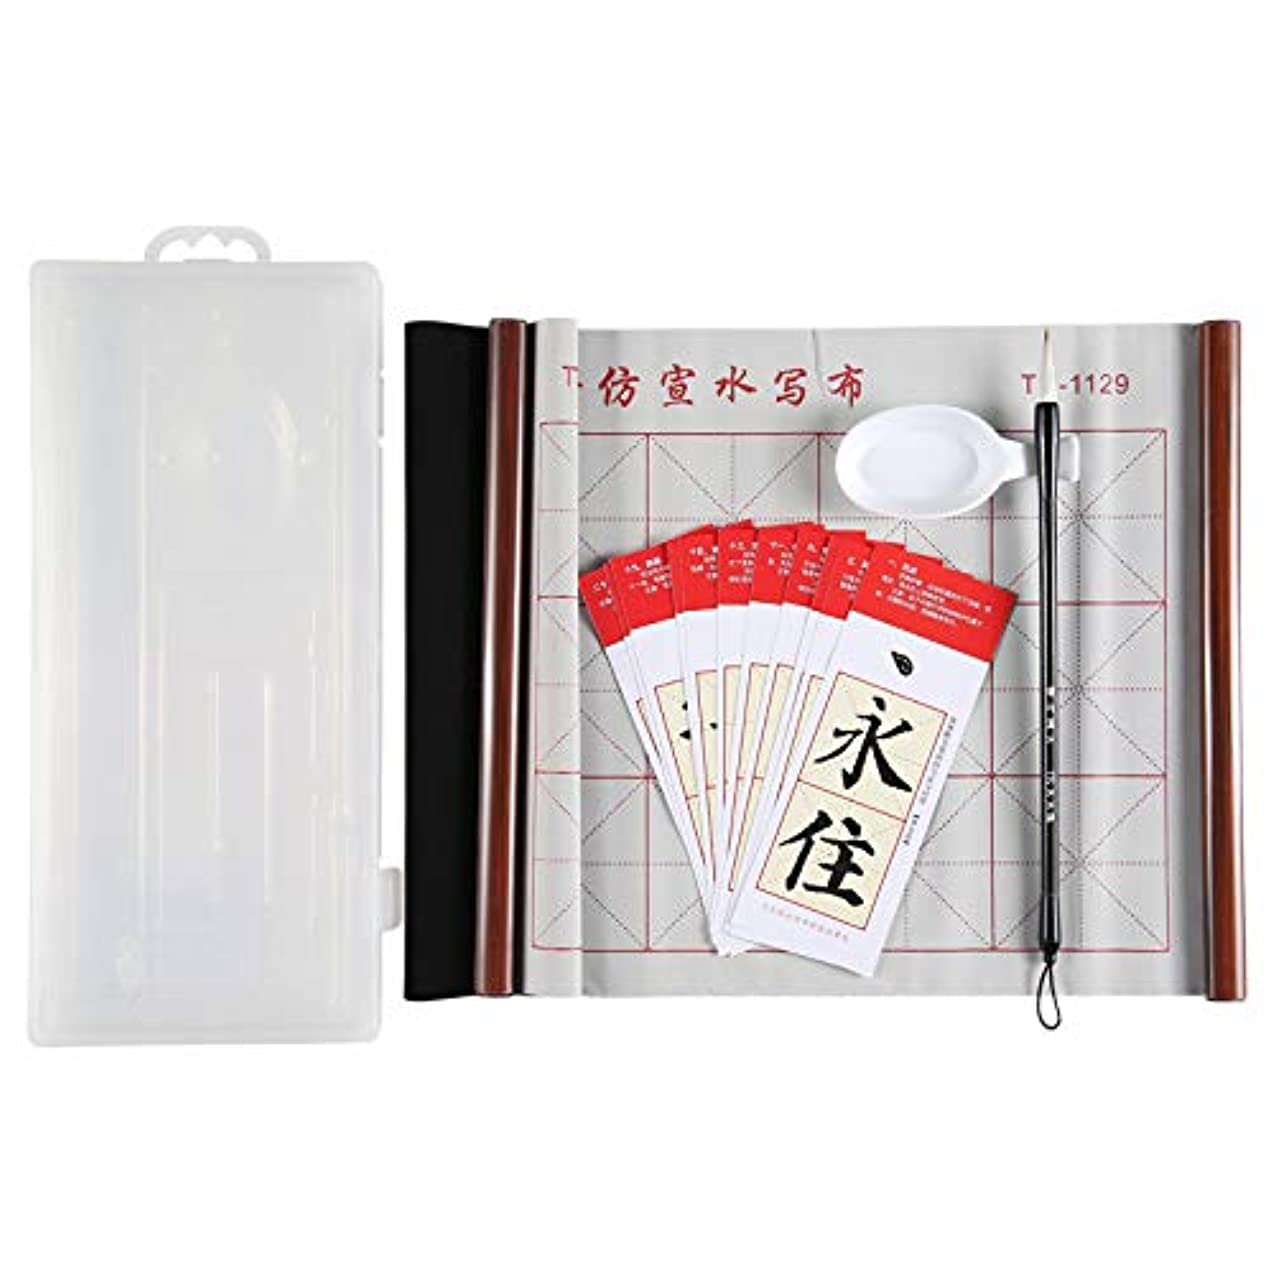 Chinese Calligraphy Set Portable Rewritable Water Writing Cloth Fabric Scroll with Brush Rack and Water Dish Quick Drying Fabric Cloth Paper for Beginners Practice Set (4 Items)